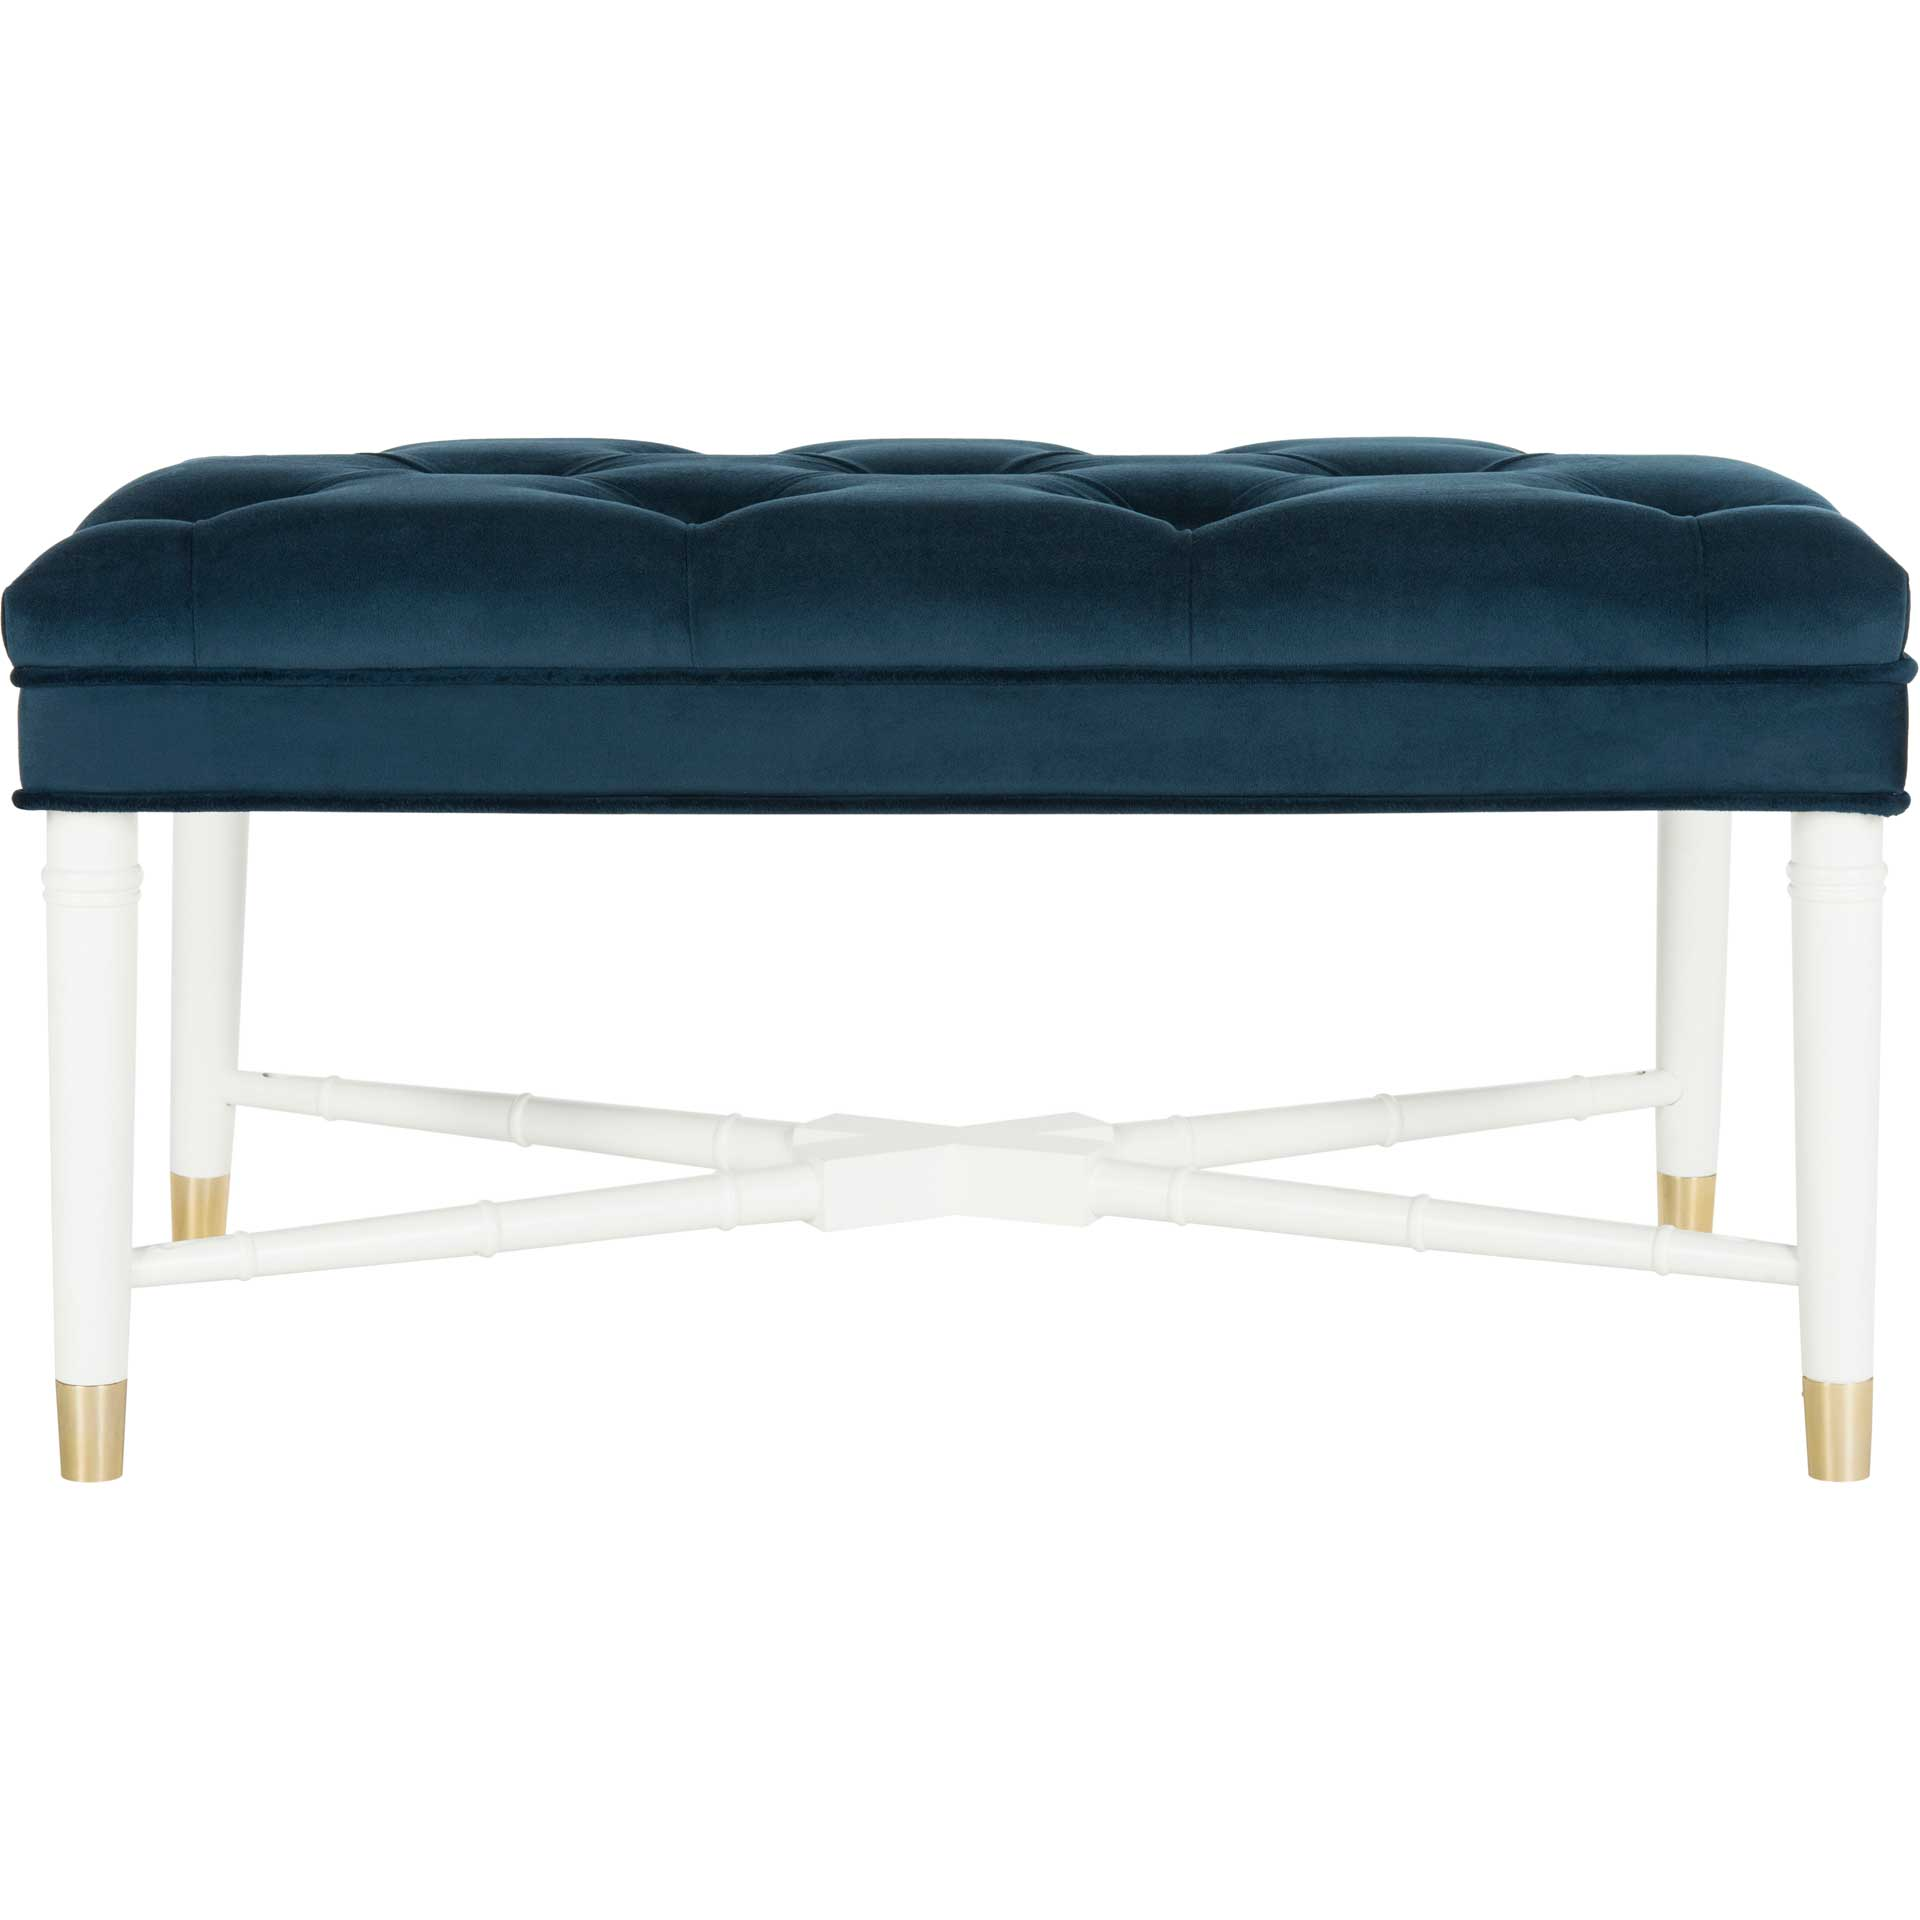 Roy Contemporary Tufted Bench Navy/White